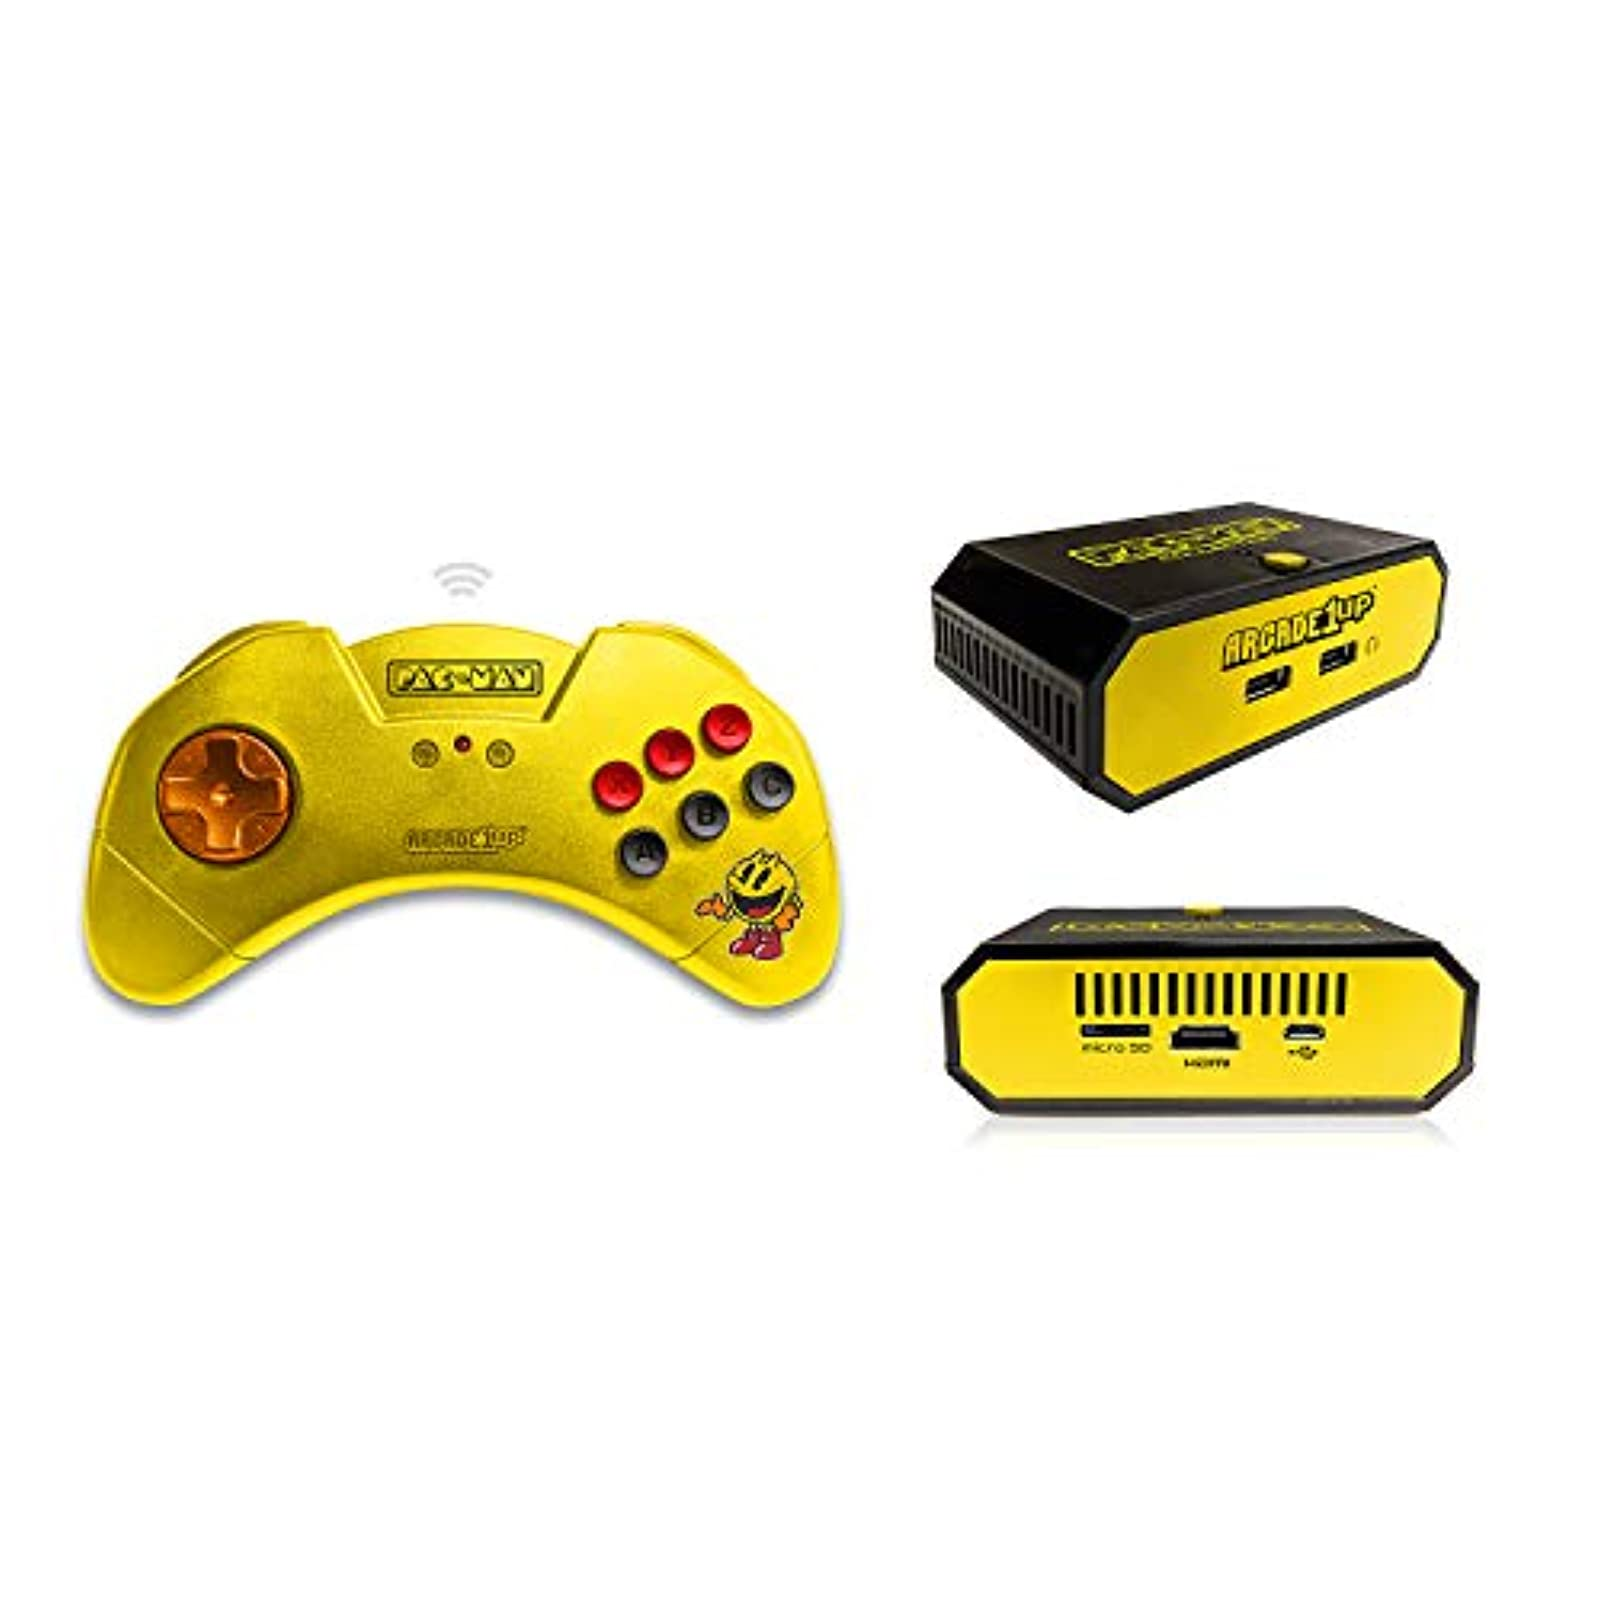 Arcade 1UP Pac-Man HDMI Game Console With Wireless Controller Includes 10 Games!